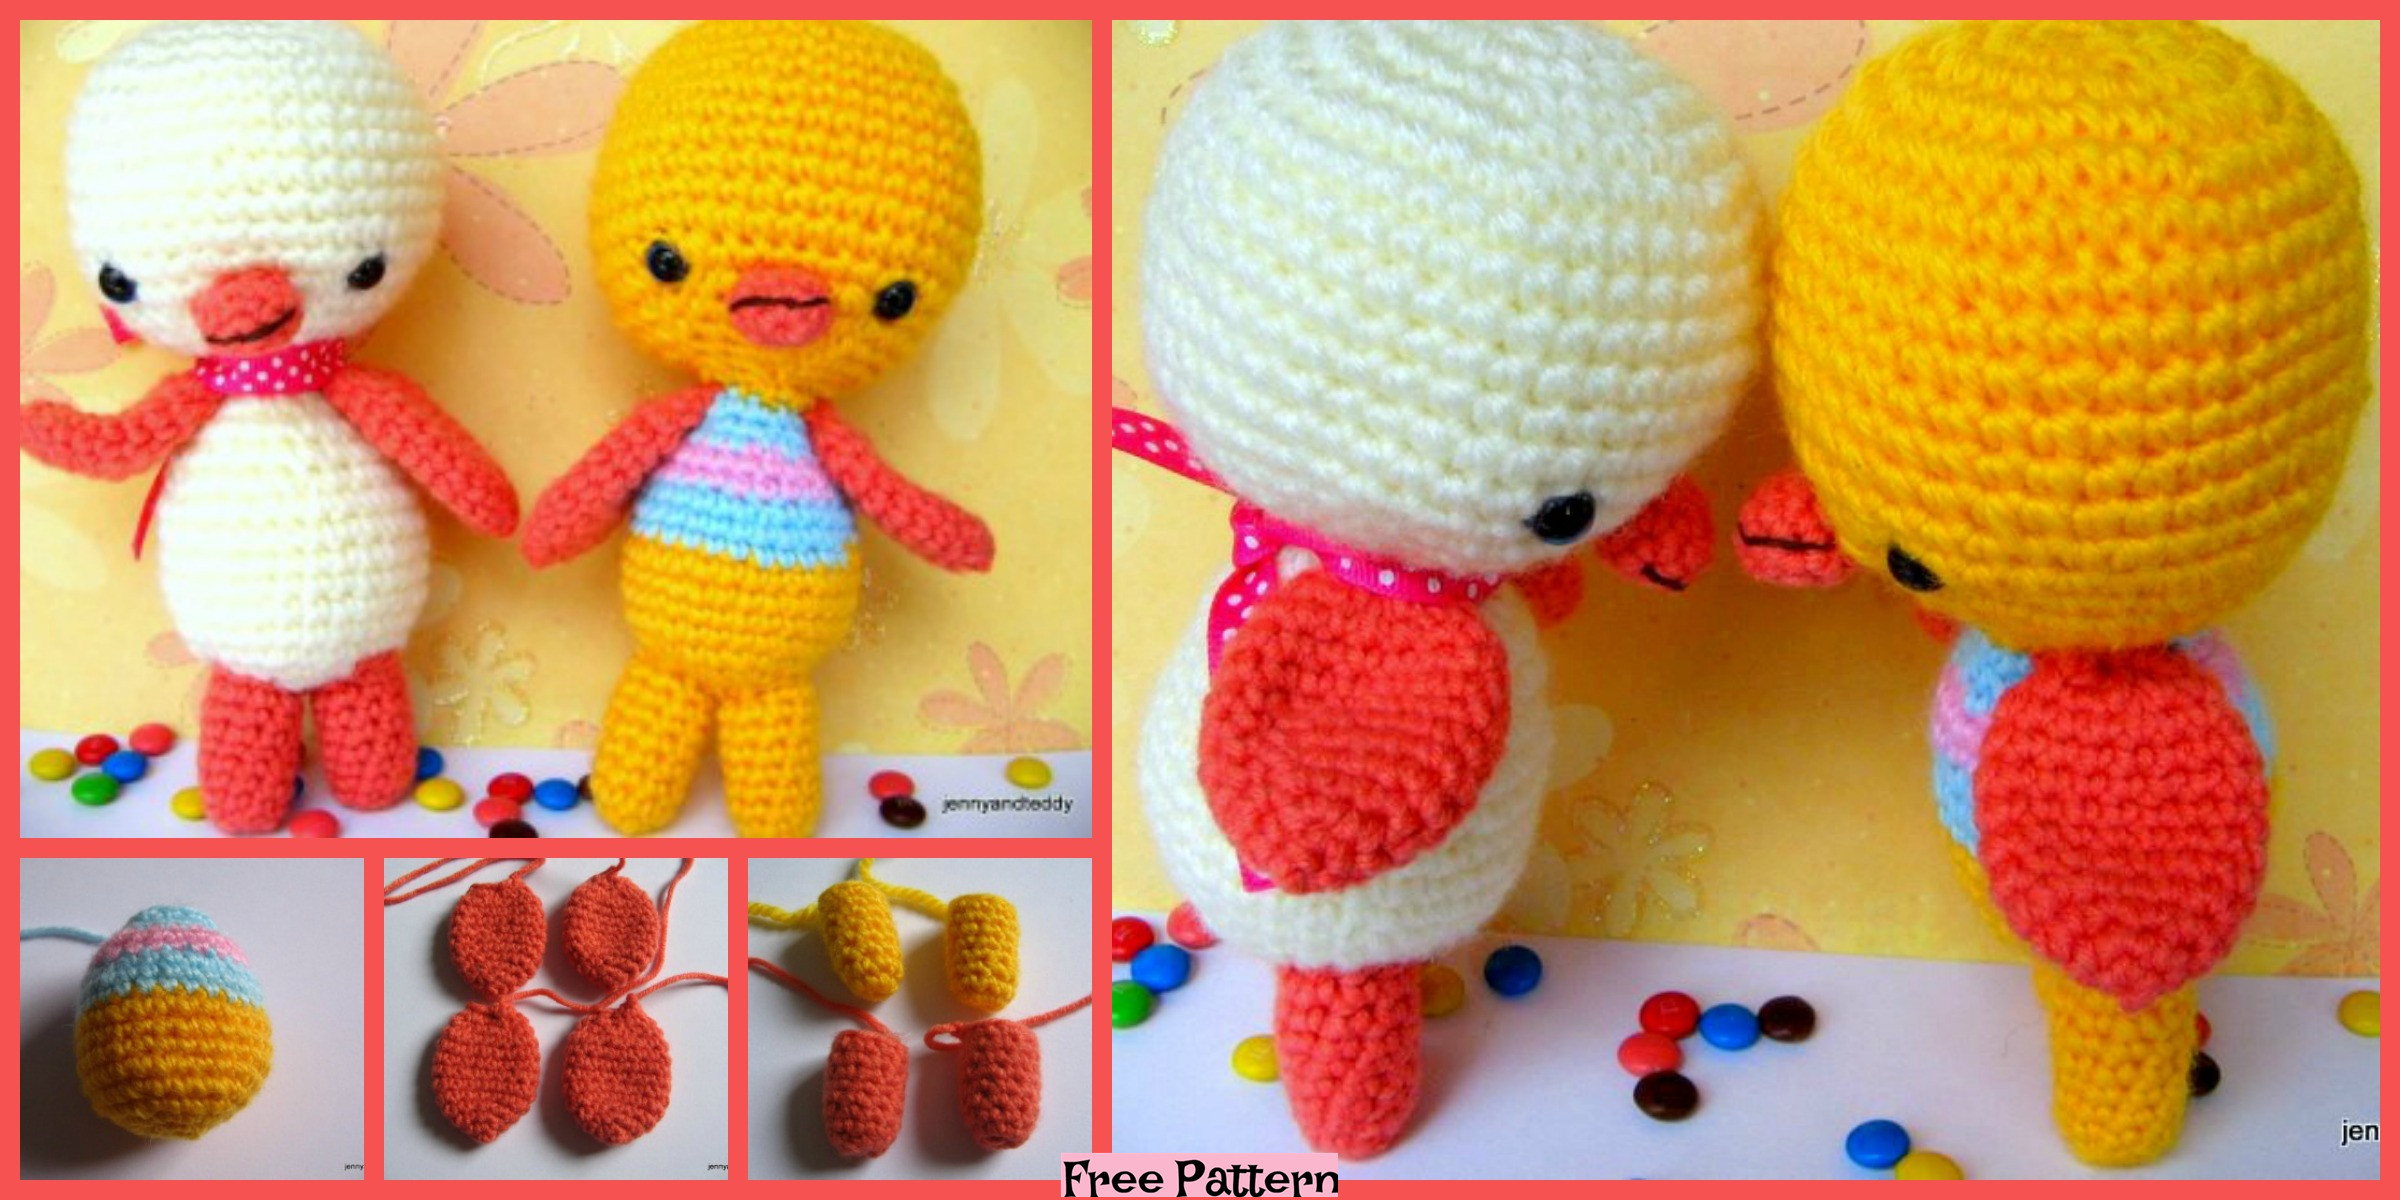 Crochet Two Little Ducky Amigurumi – Free Pattern